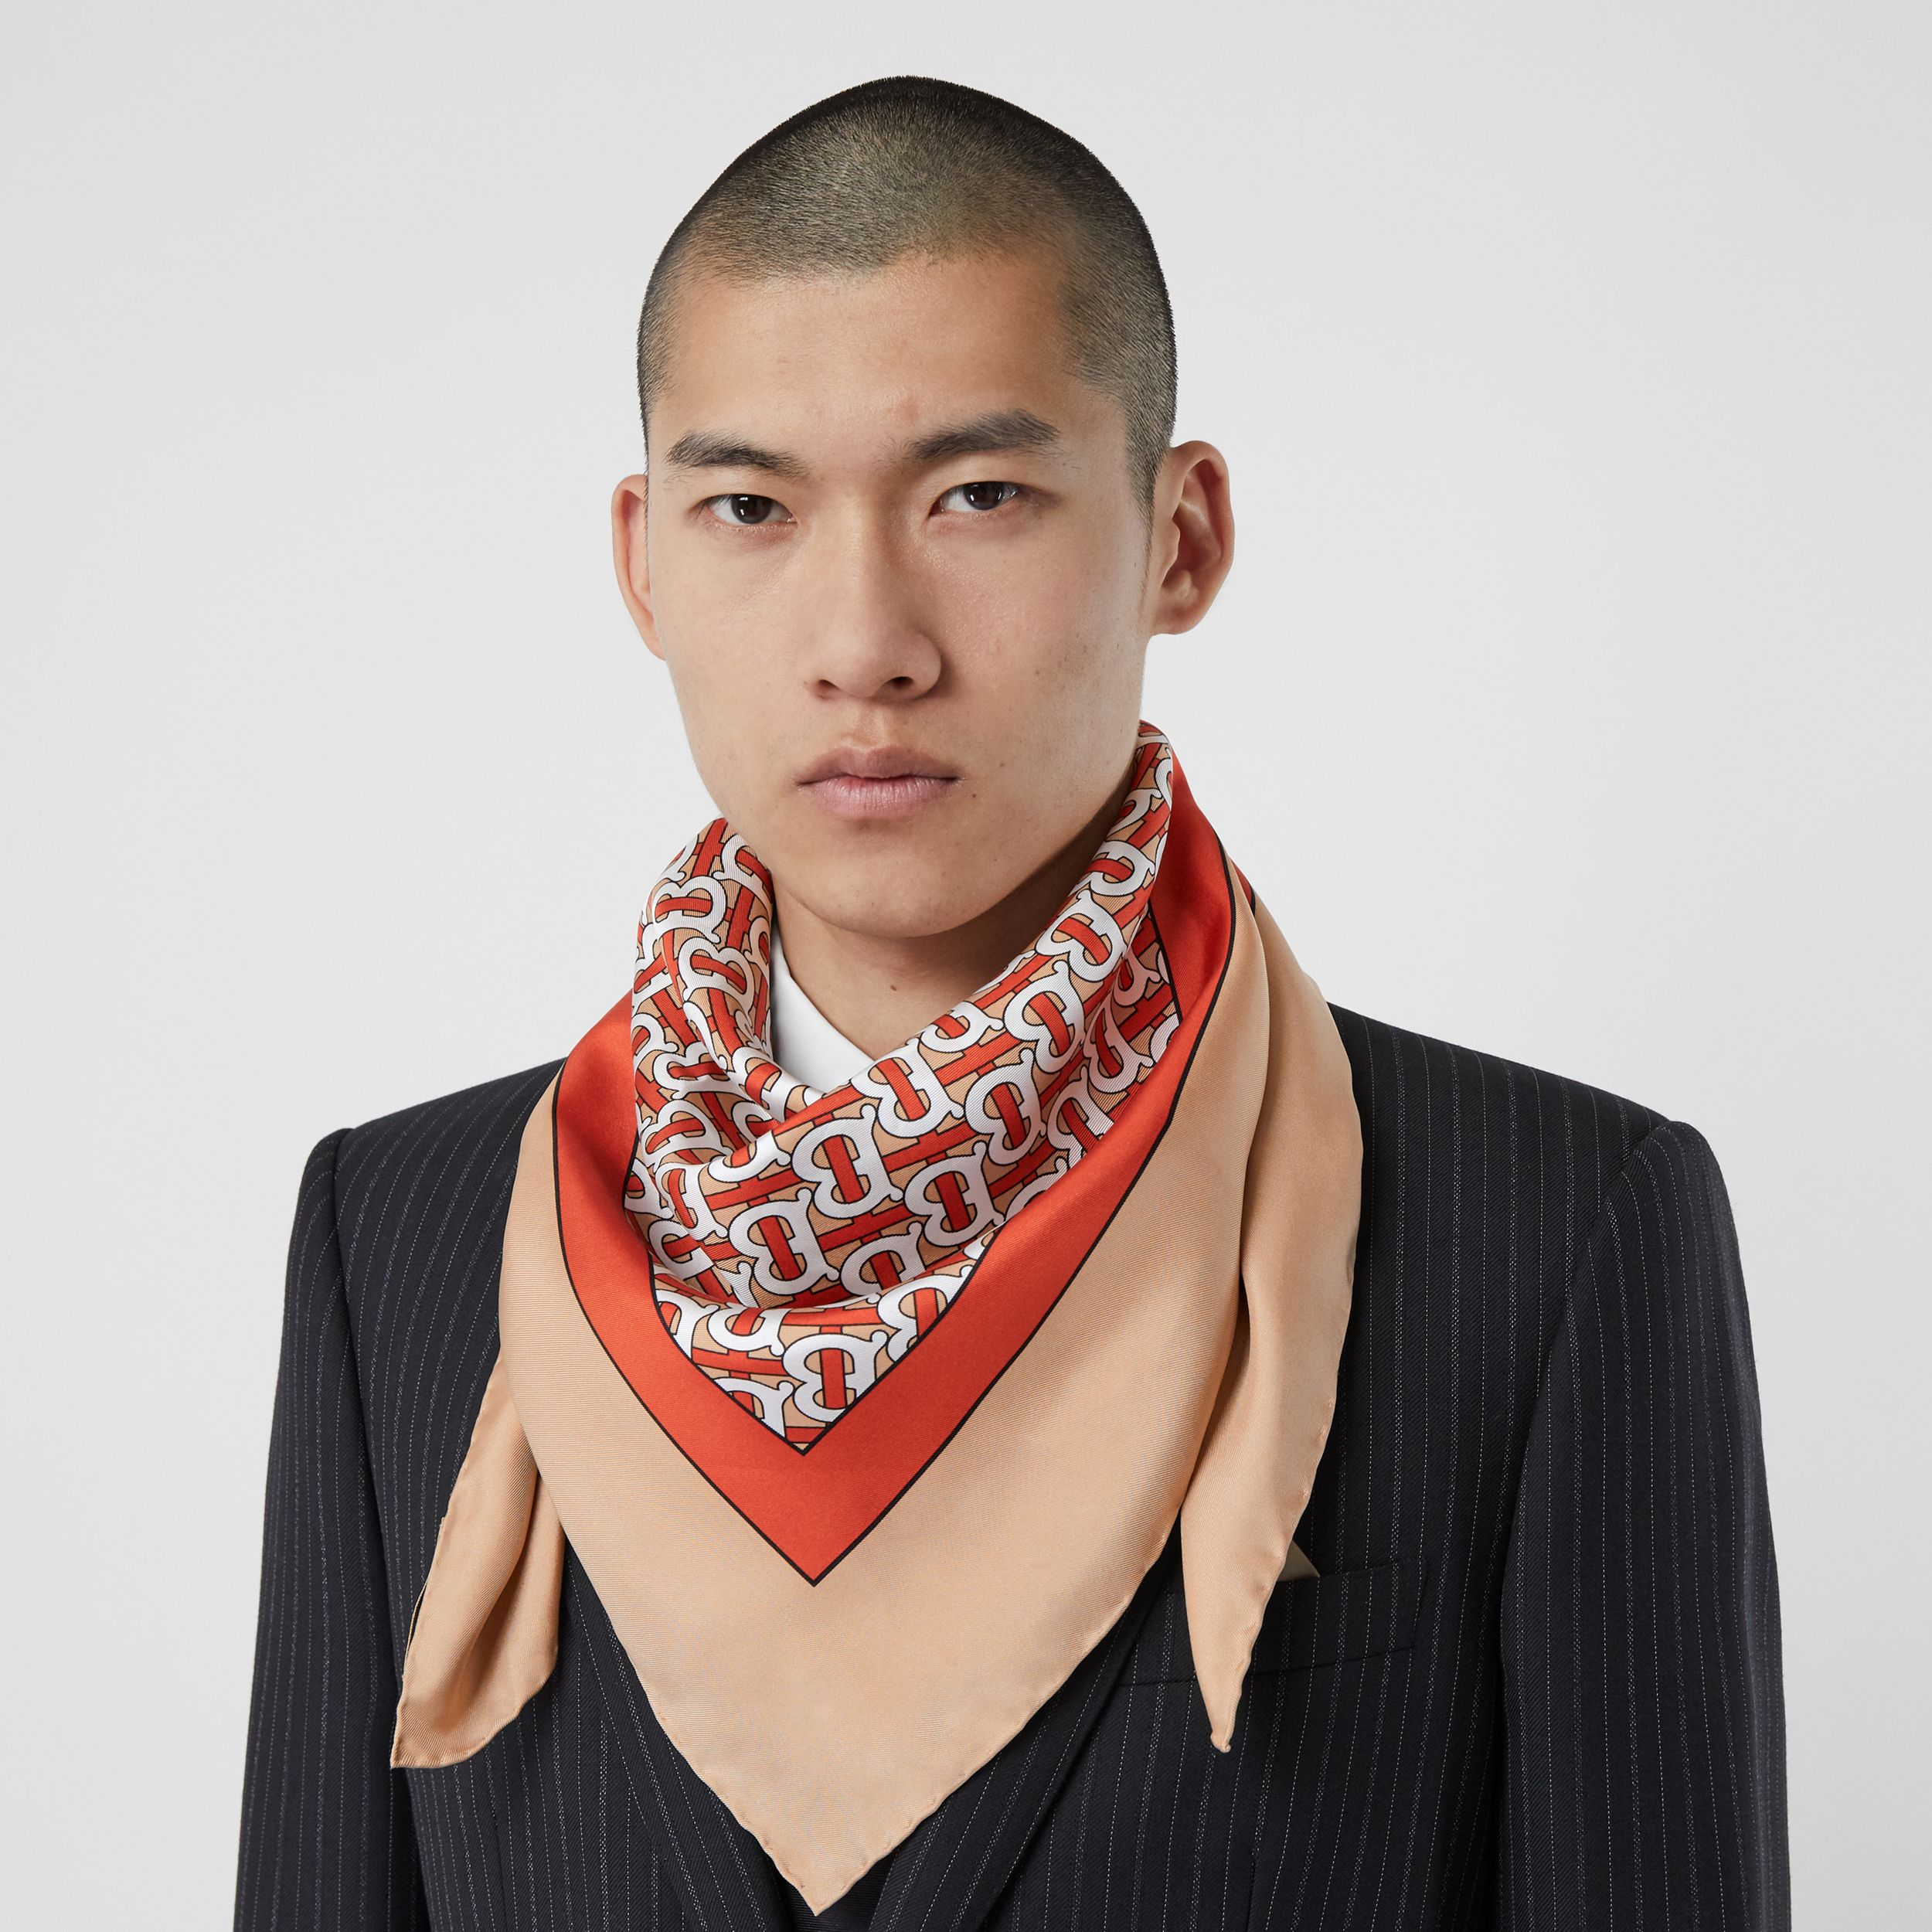 Monogram Print Silk Square Scarf in Vermilion - Women | Burberry - 4